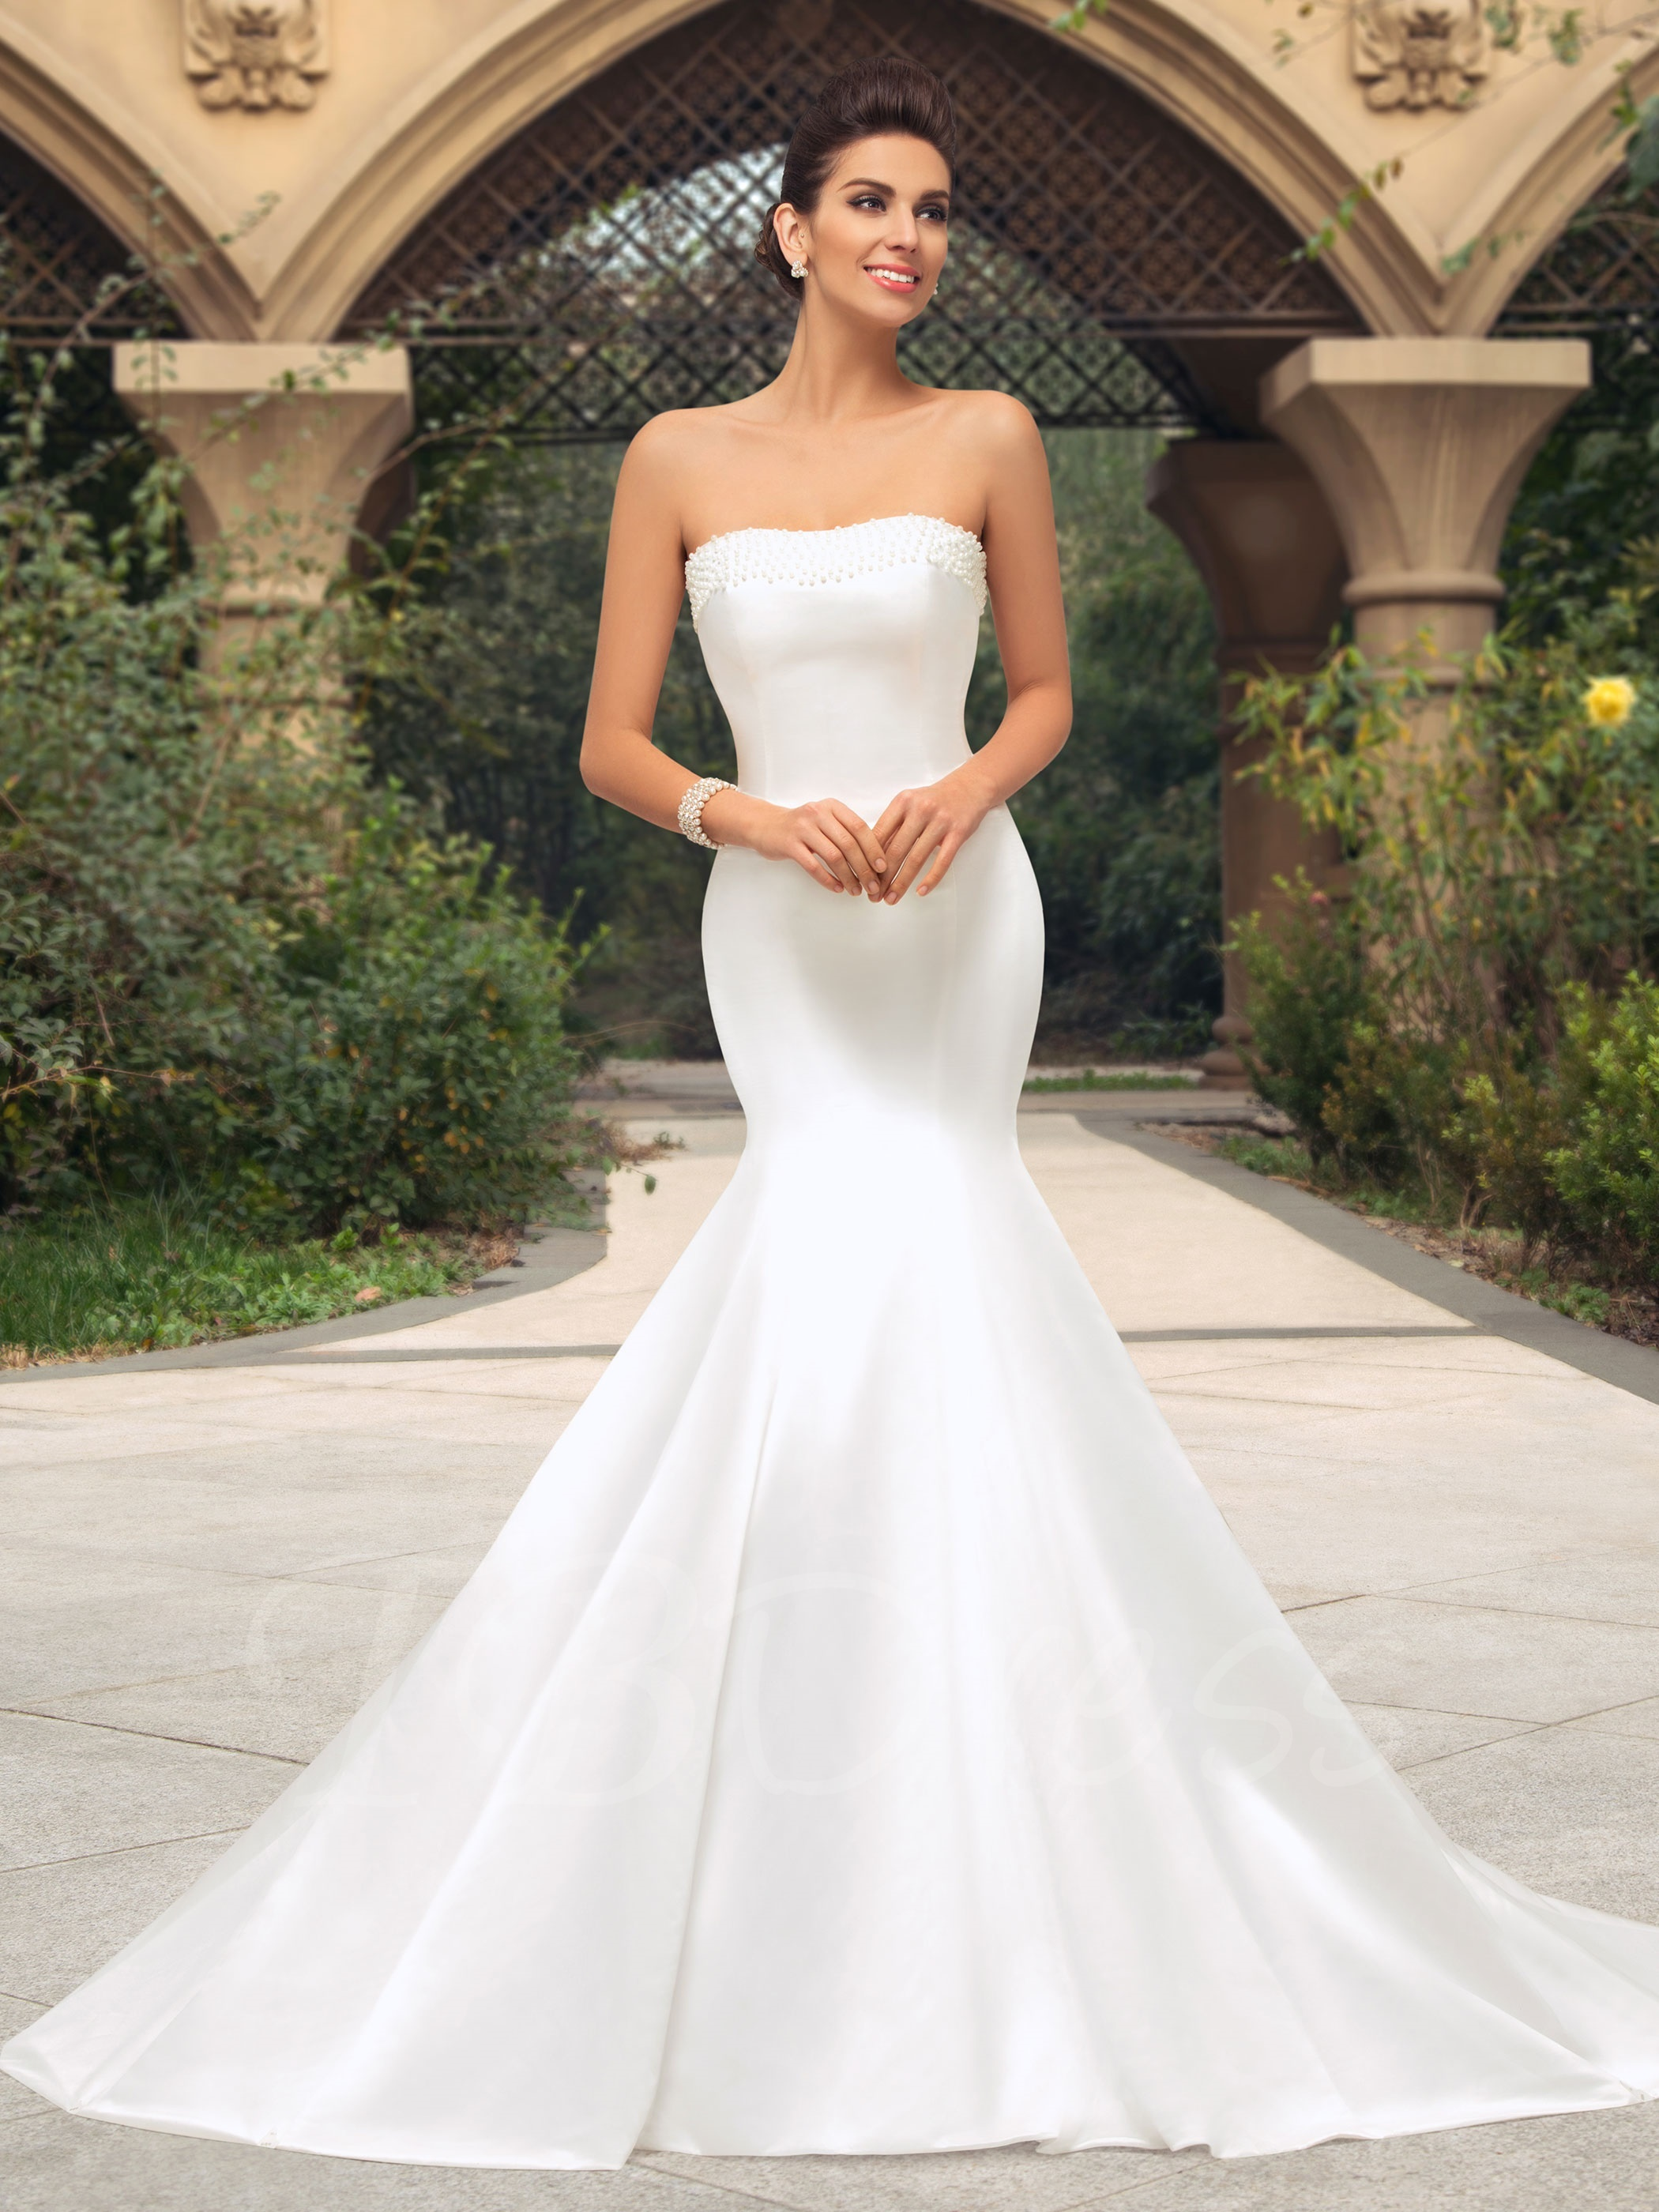 body fitted wedding dresses photo - 1